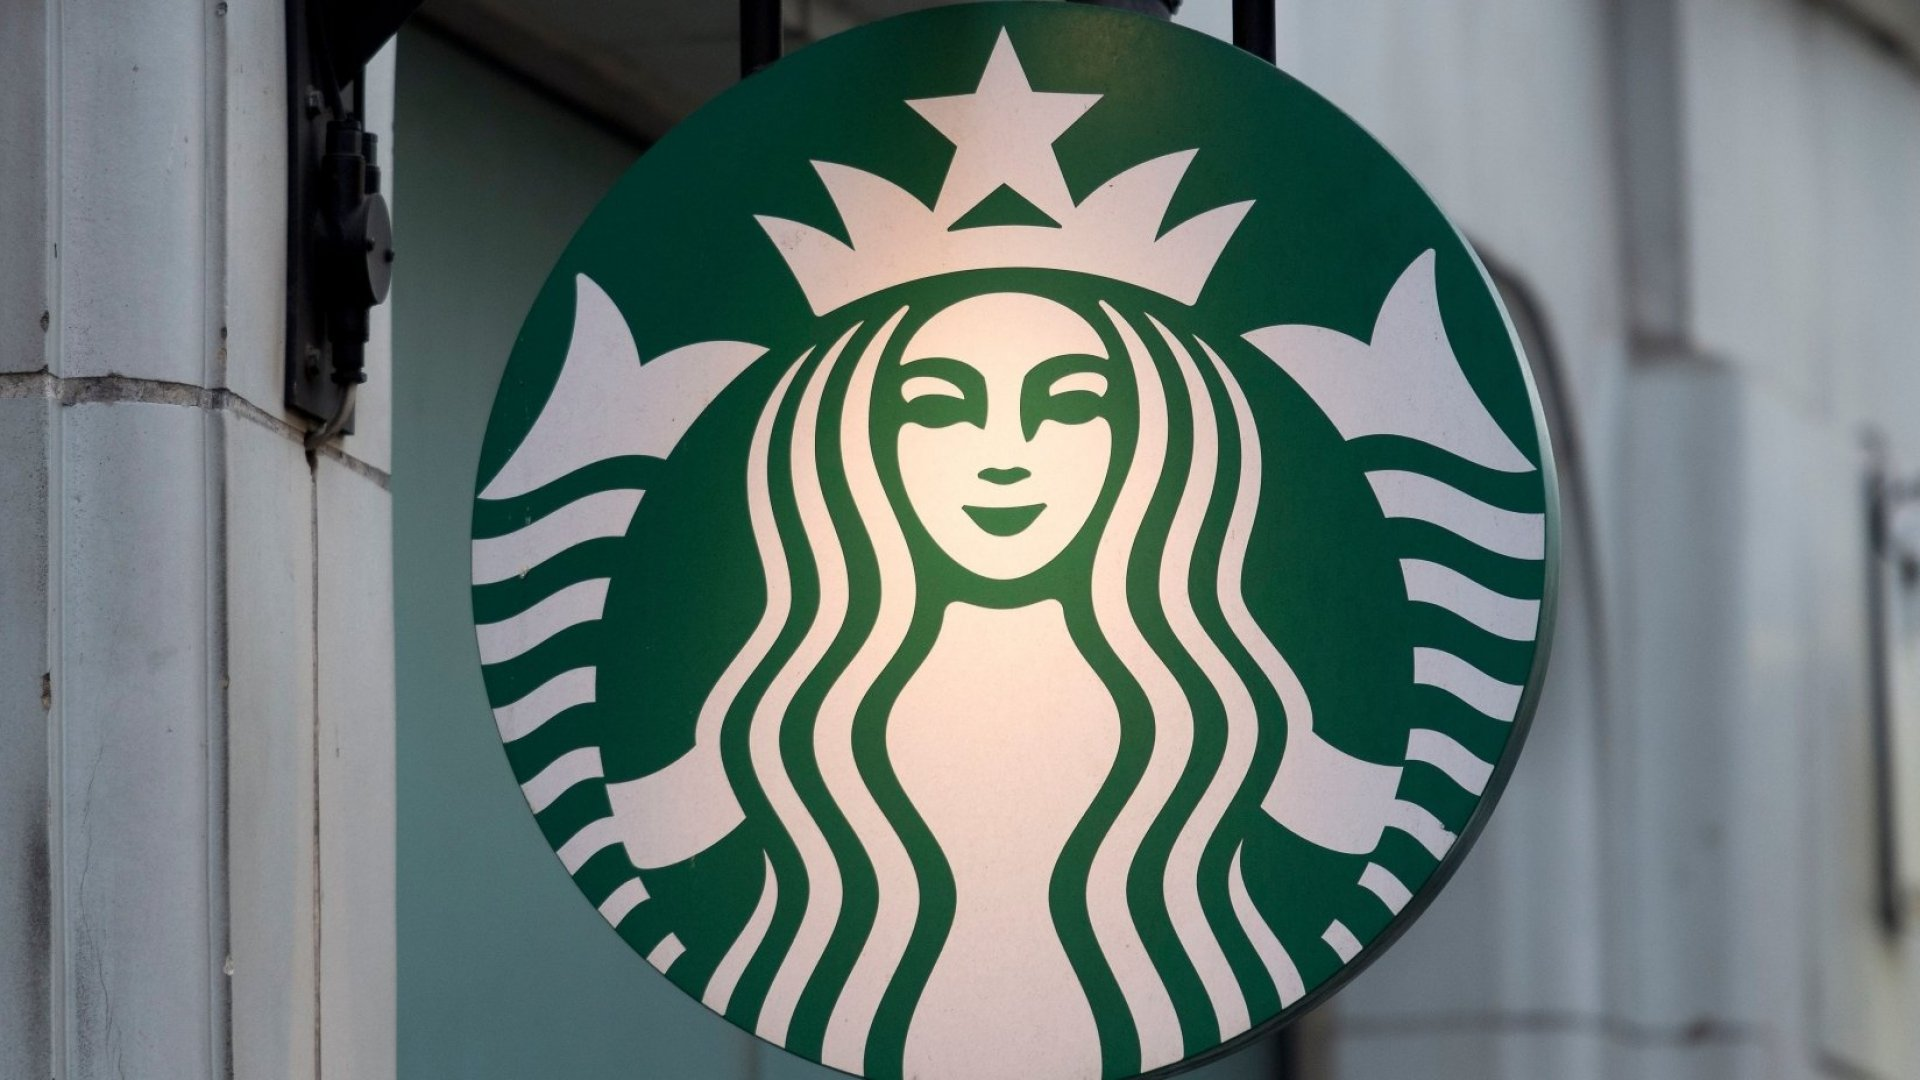 Starbucks Is About to Take a Controversial Step That Will Make Employees Very Unhappy